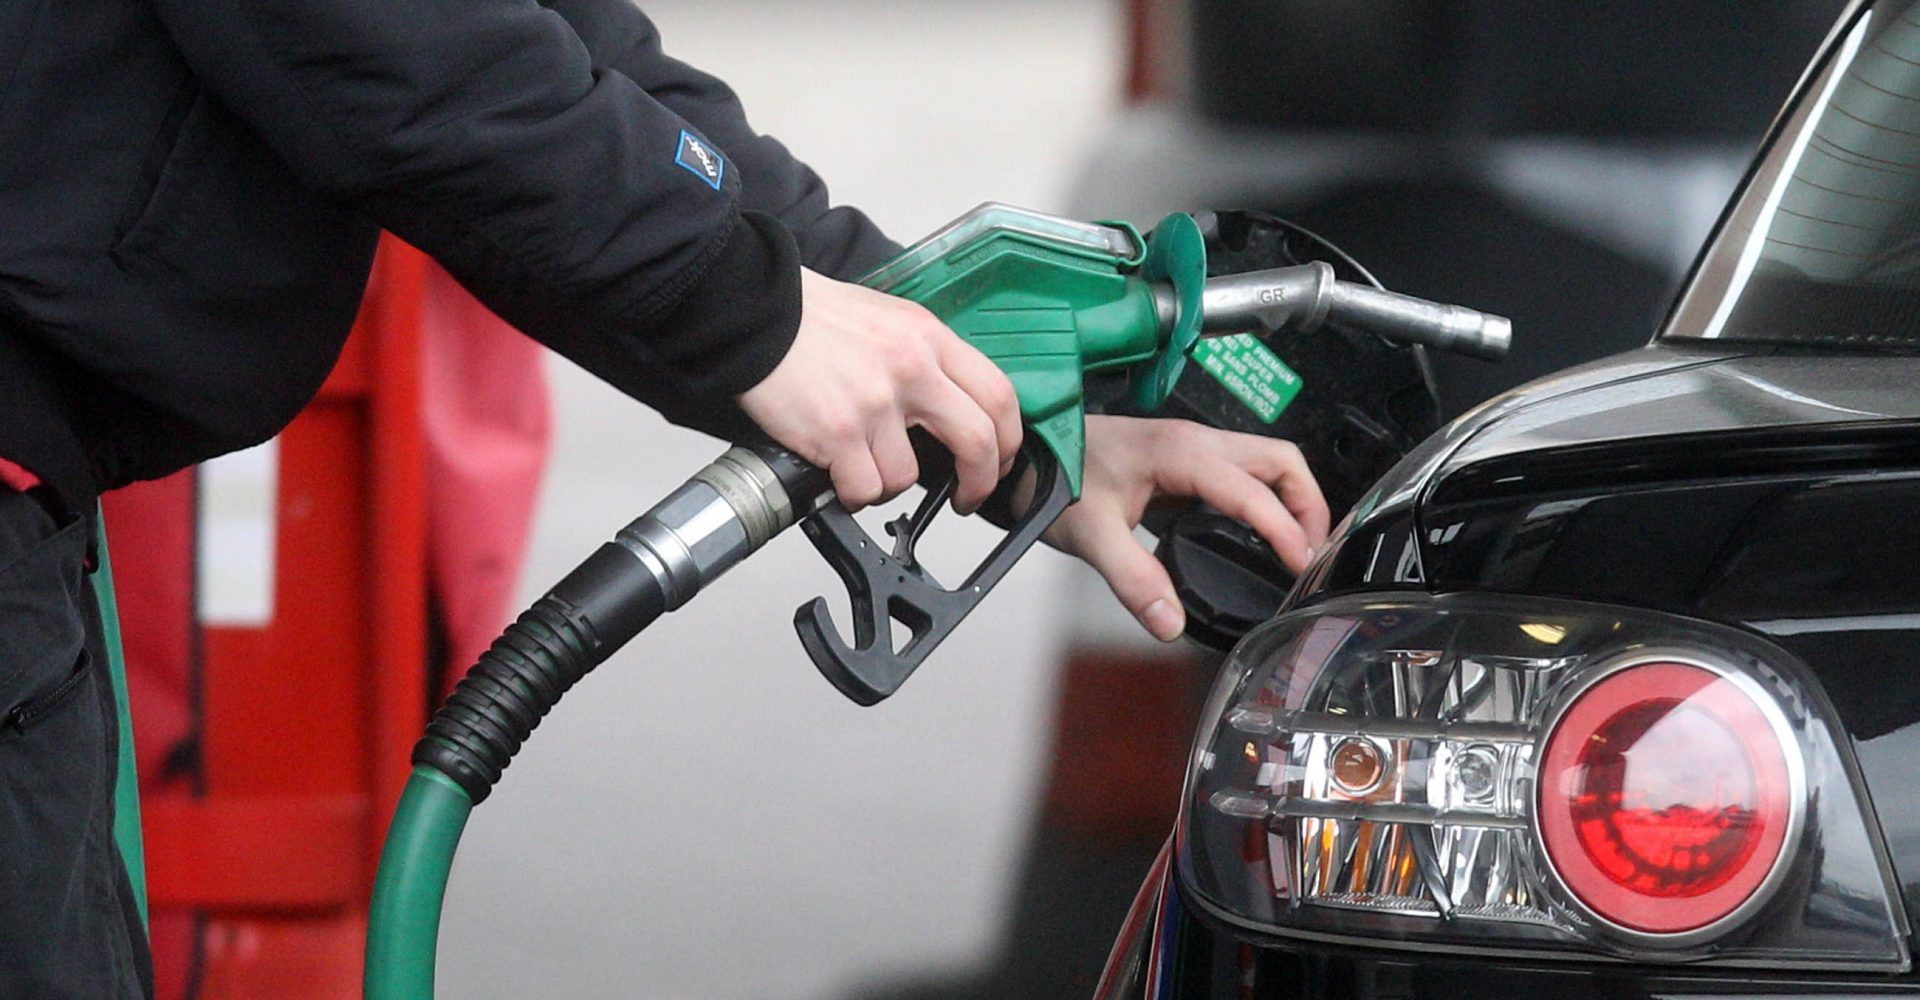 Supermarkets offer new 'discriminatory' fuel coupons